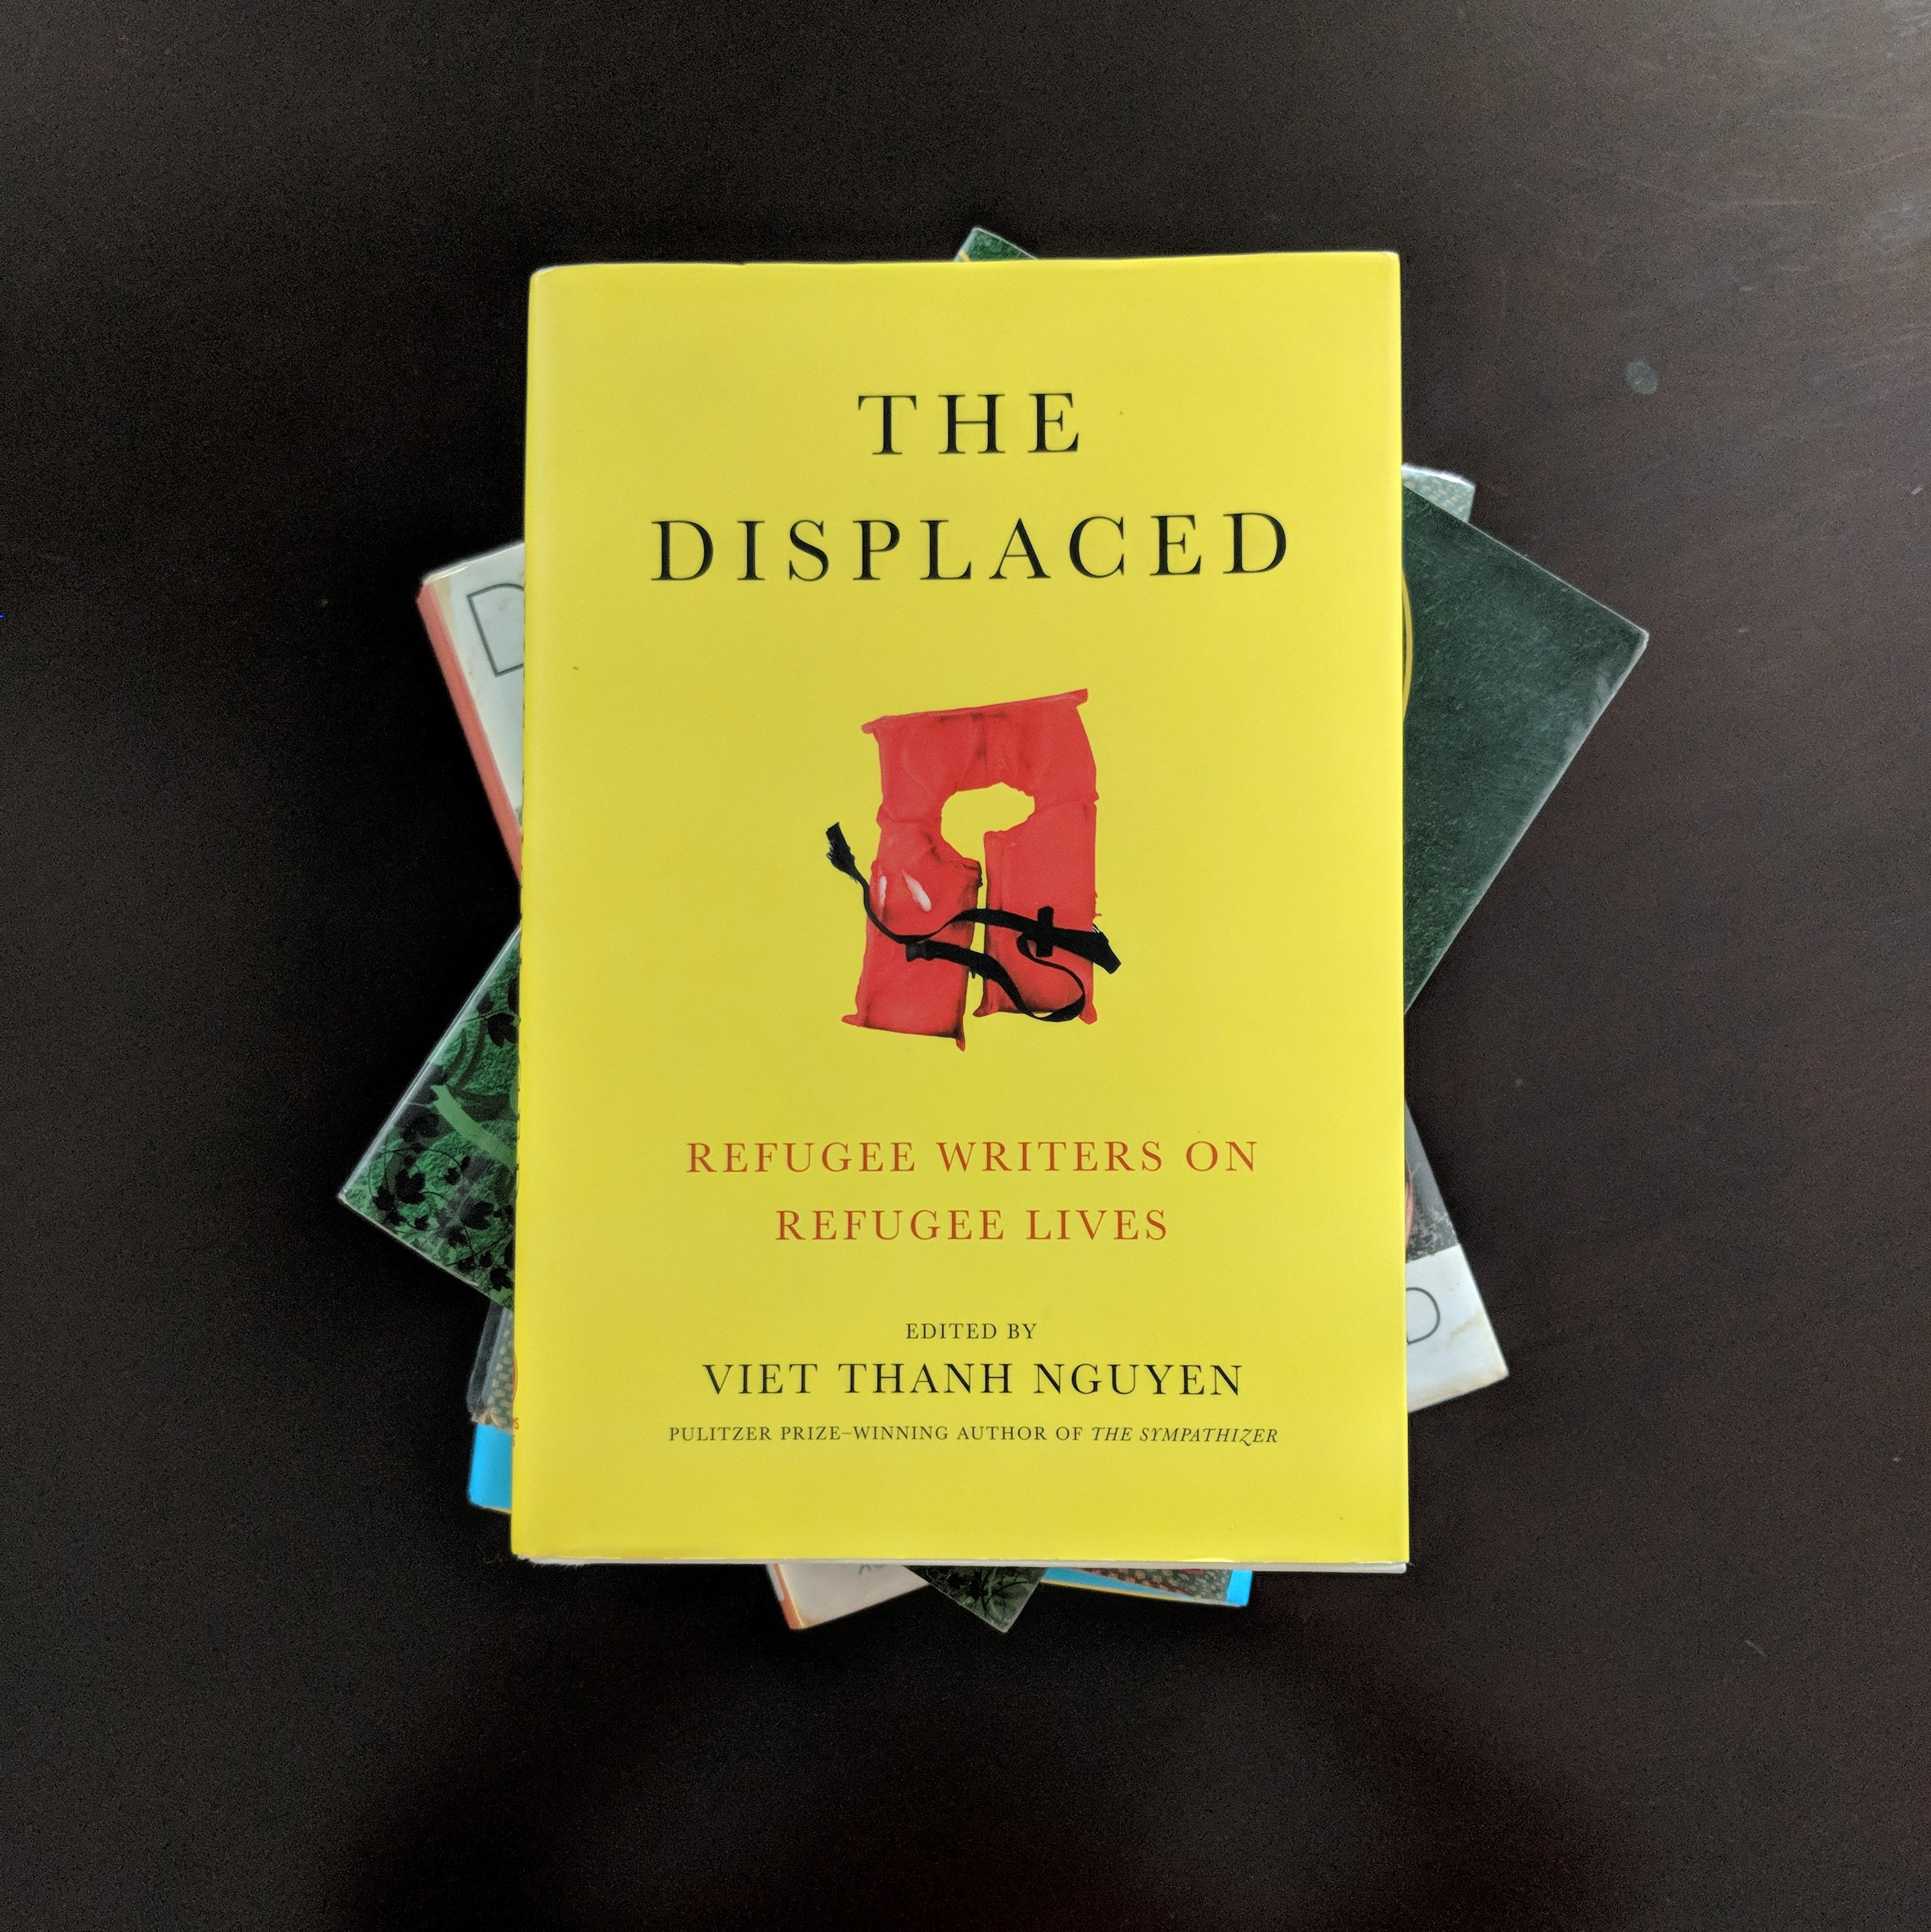 The Displaced edited by Viet Thanh Nguyen